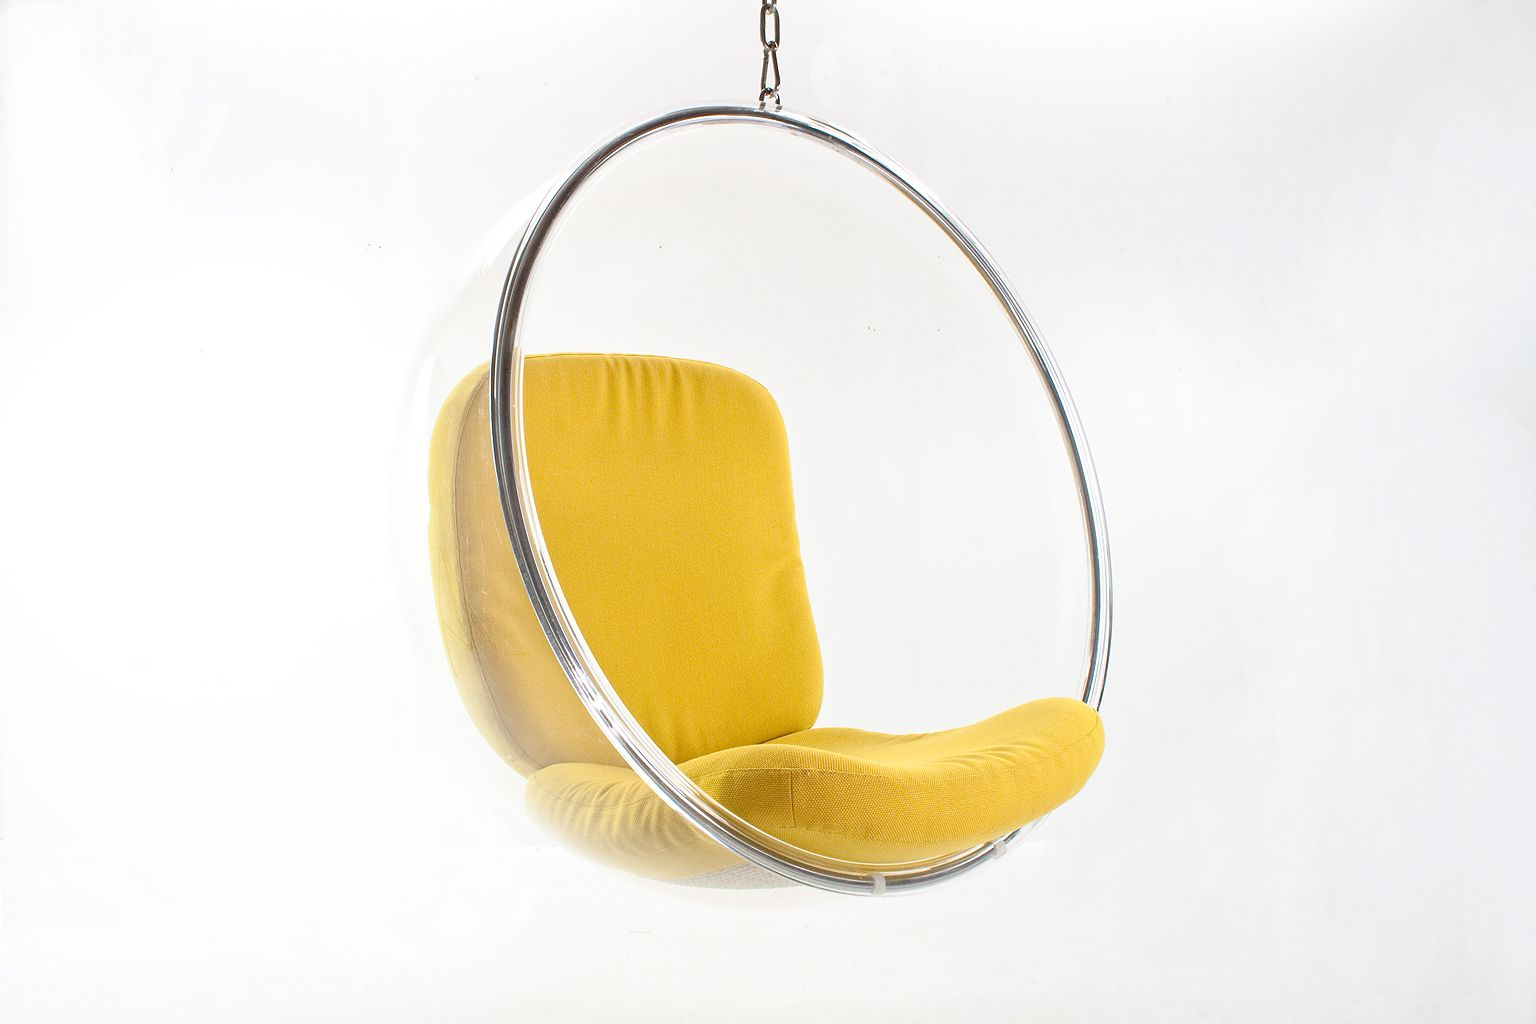 Bubble chair eero aarnio - Original Acrylic Bubble Hanging Chair Of Eero Aarnio The Bubble Chair Is Designed By Eero